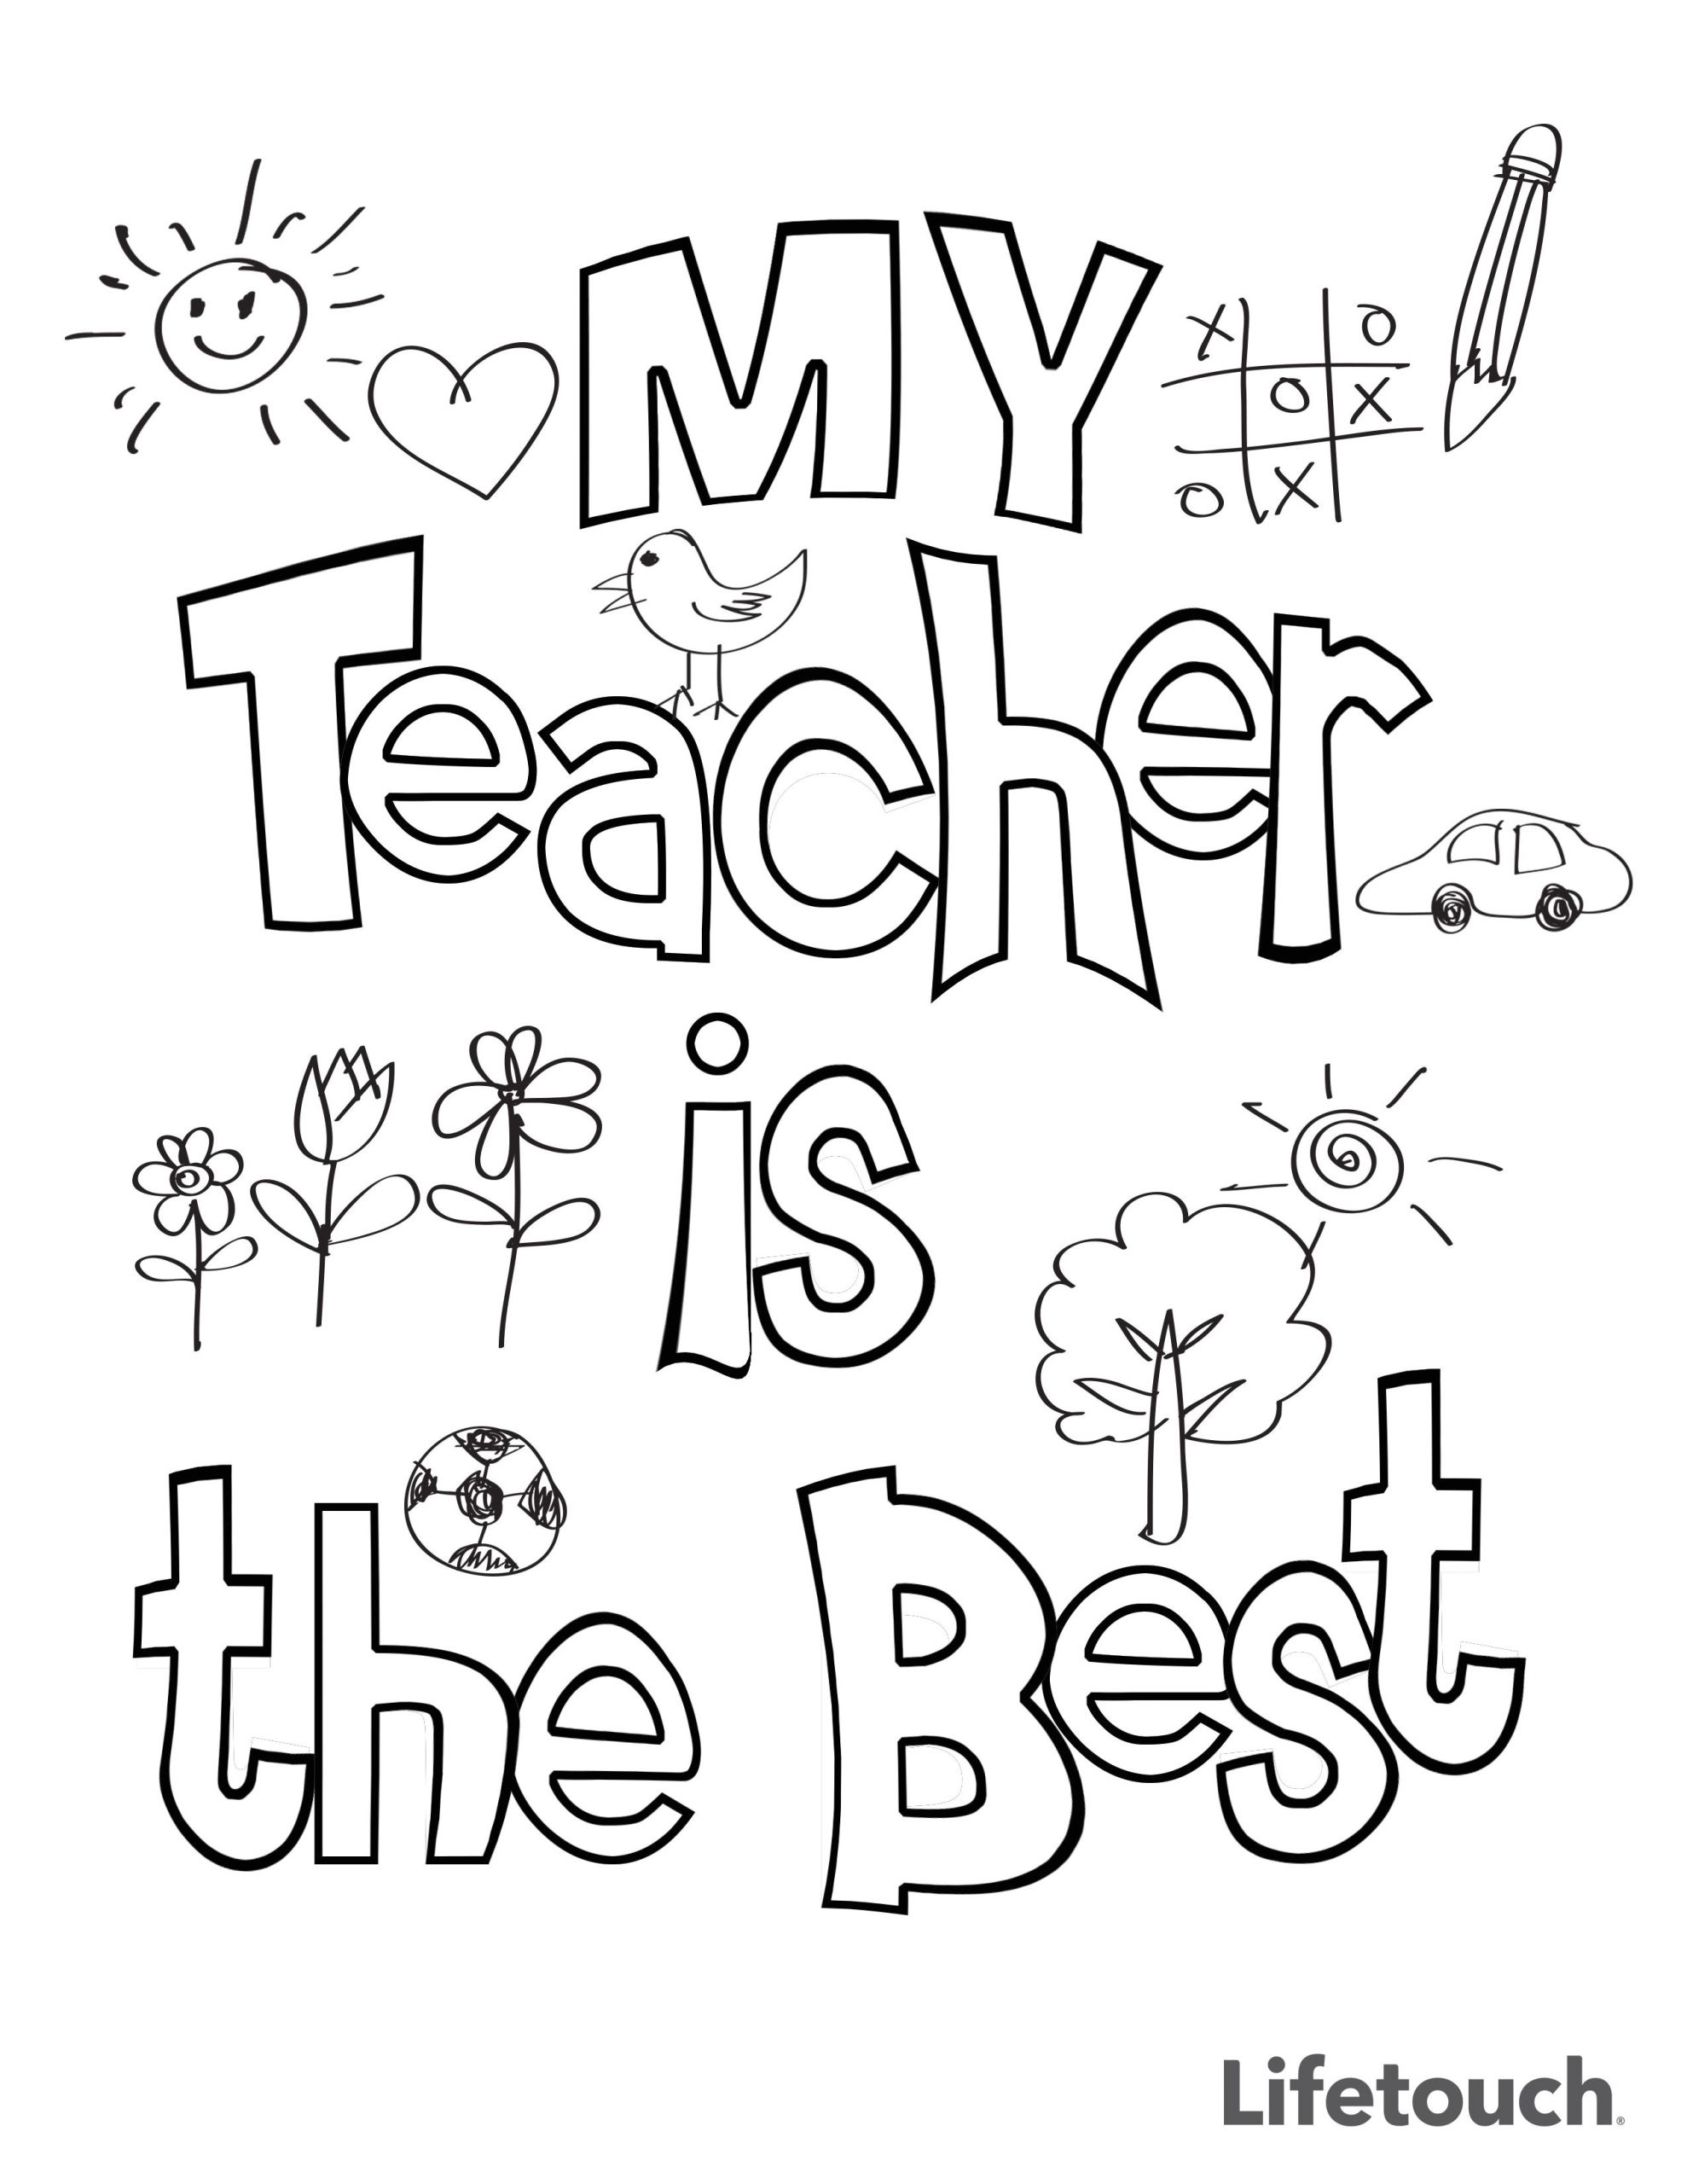 Teachers Day Card for Principal Teacher Appreciation Coloring Sheet with Images Teacher